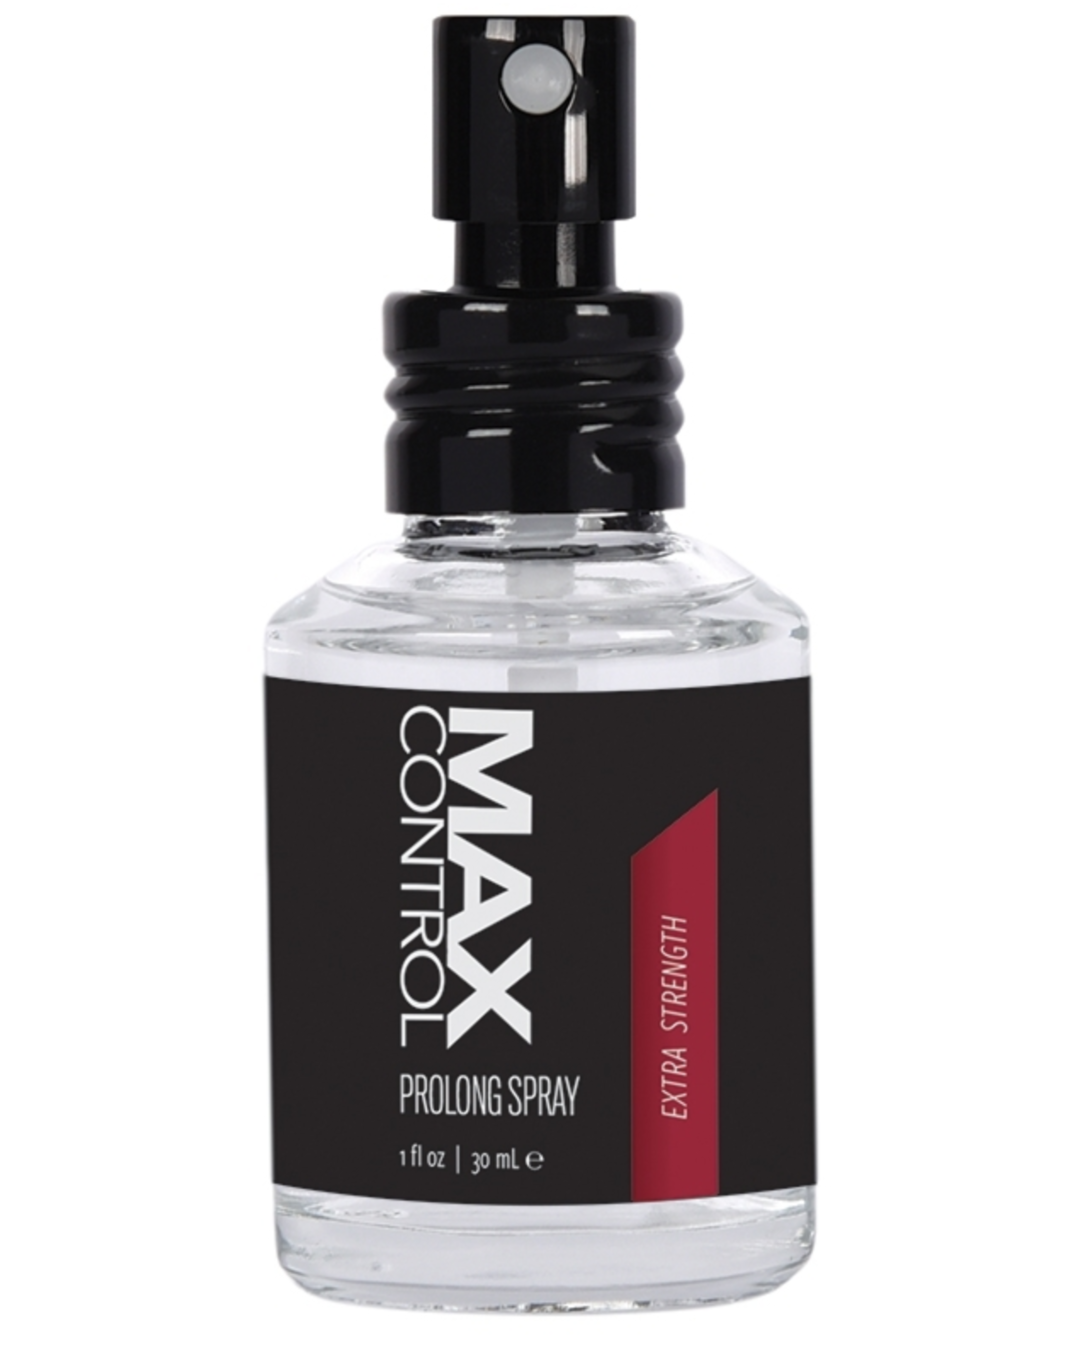 Max Control Prolong Spray Extra Strength - 1 oz close up of bottle